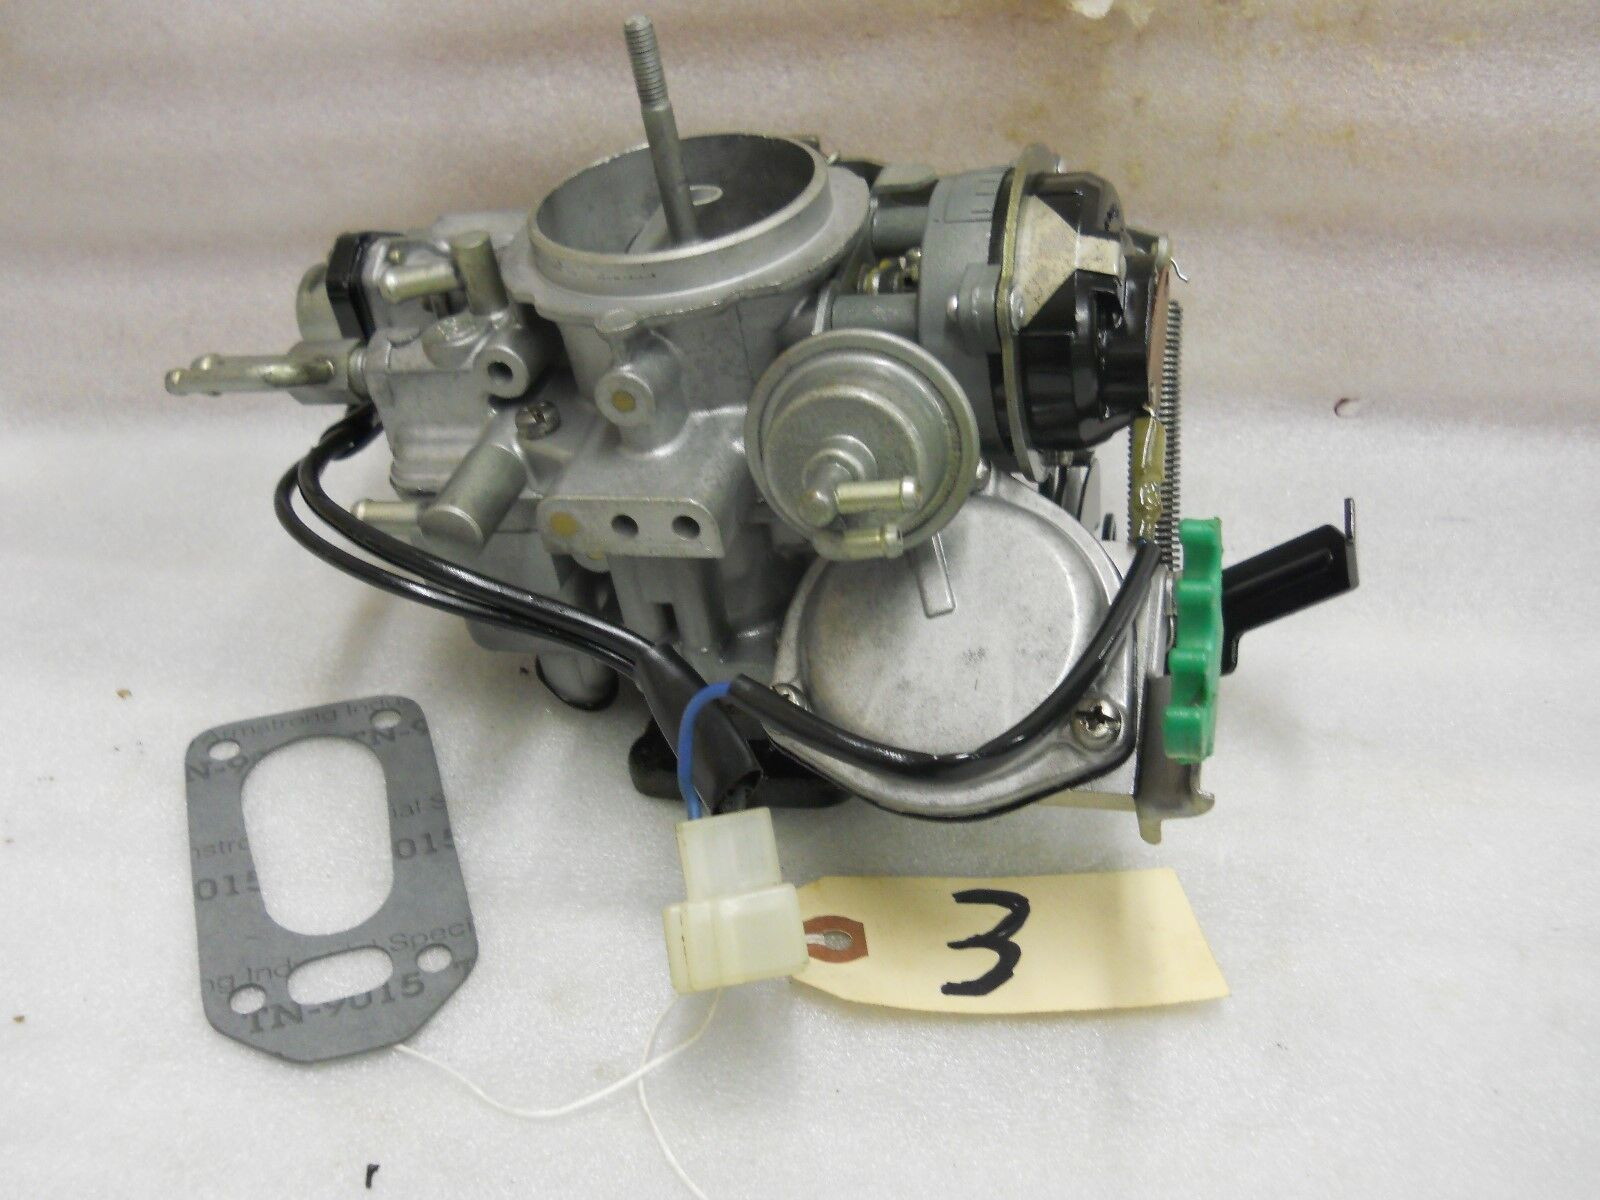 Buy Used Carburetor Parts from Top-Rated Salvage Yards